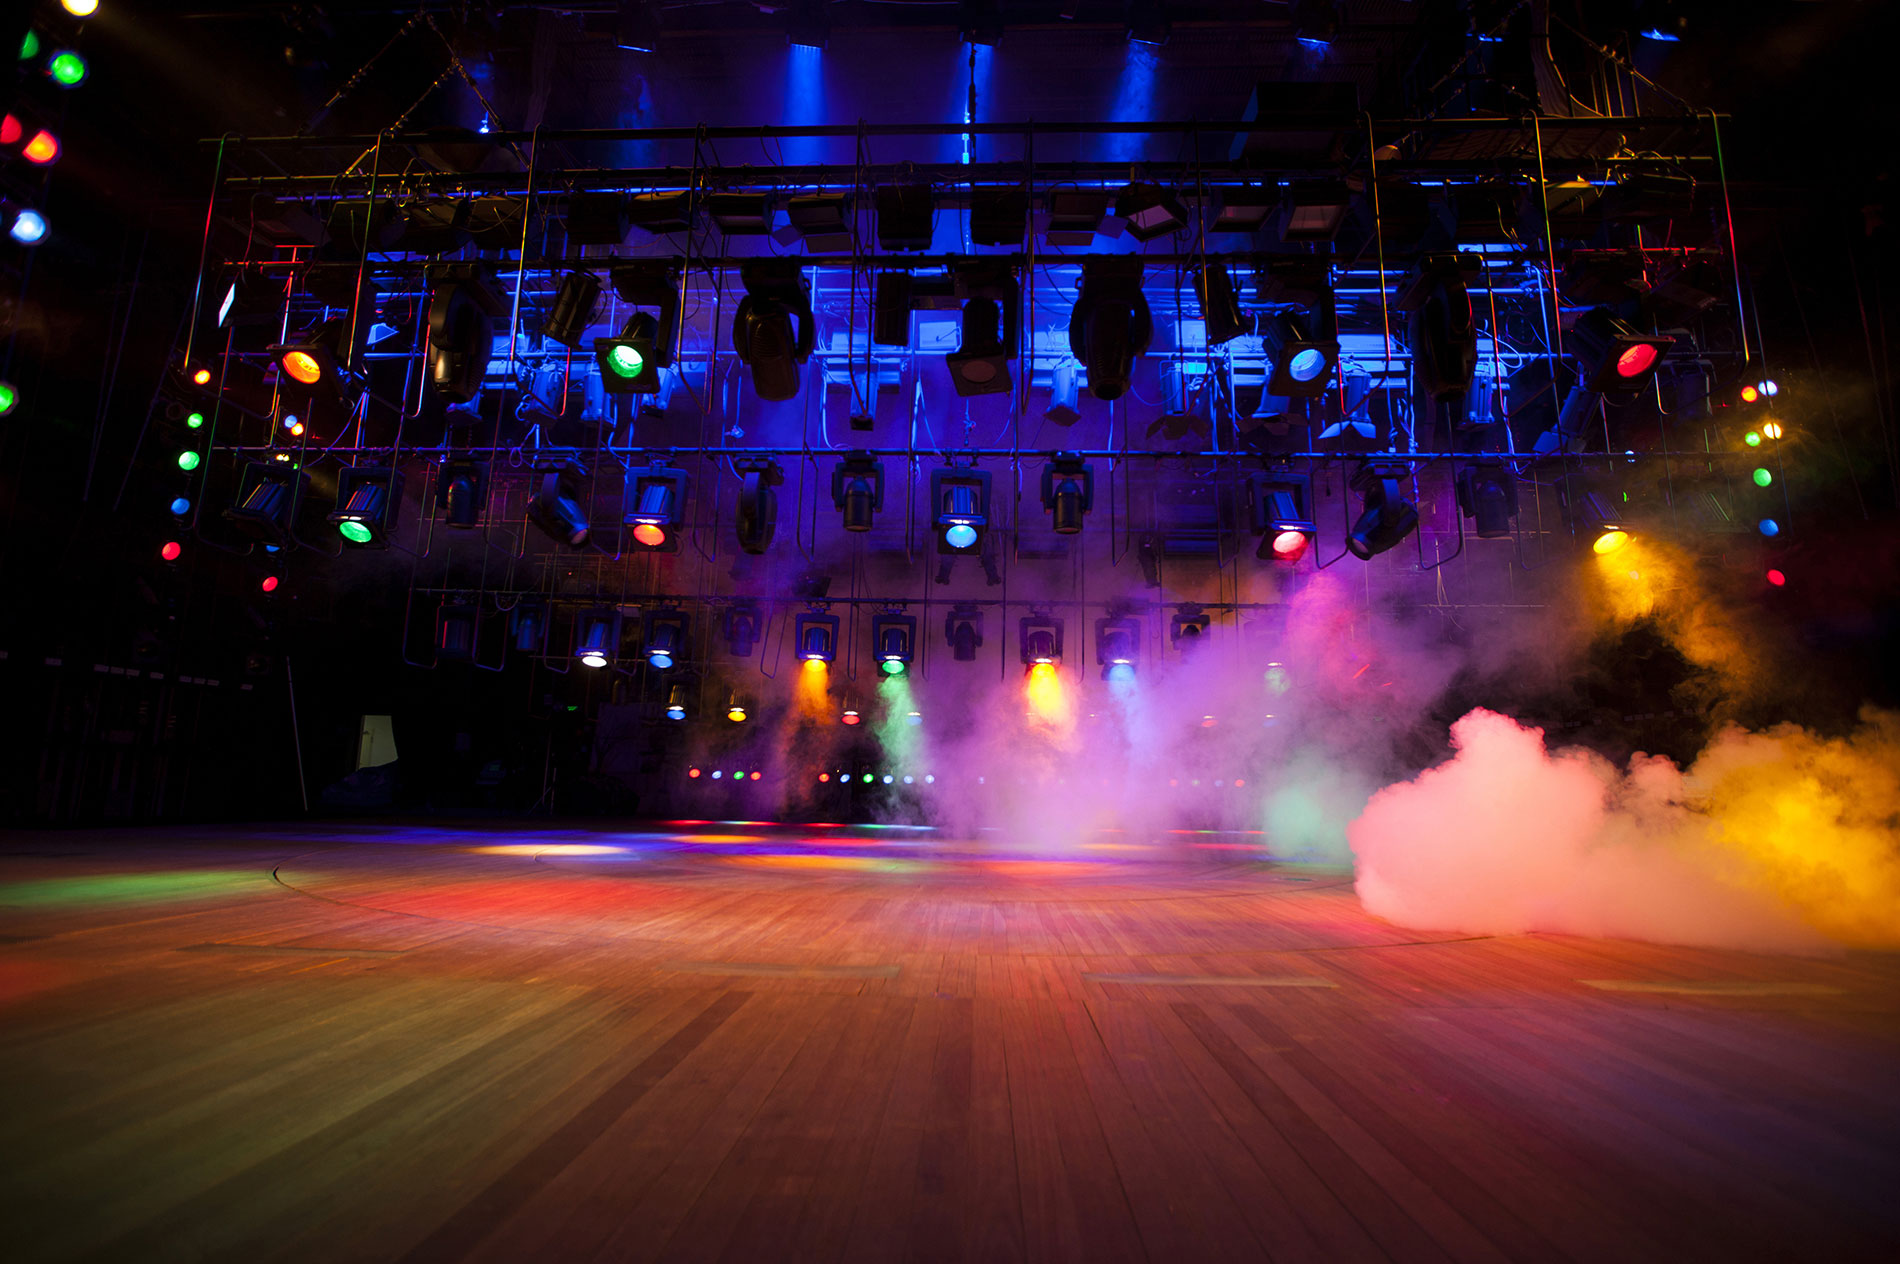 Event Lighting - Our lighting stock is constantly updating, Engage with us early on in your planning with regards to your lighting needs so we can create a solutions that works for your event and budget.Send us a message or call us on,